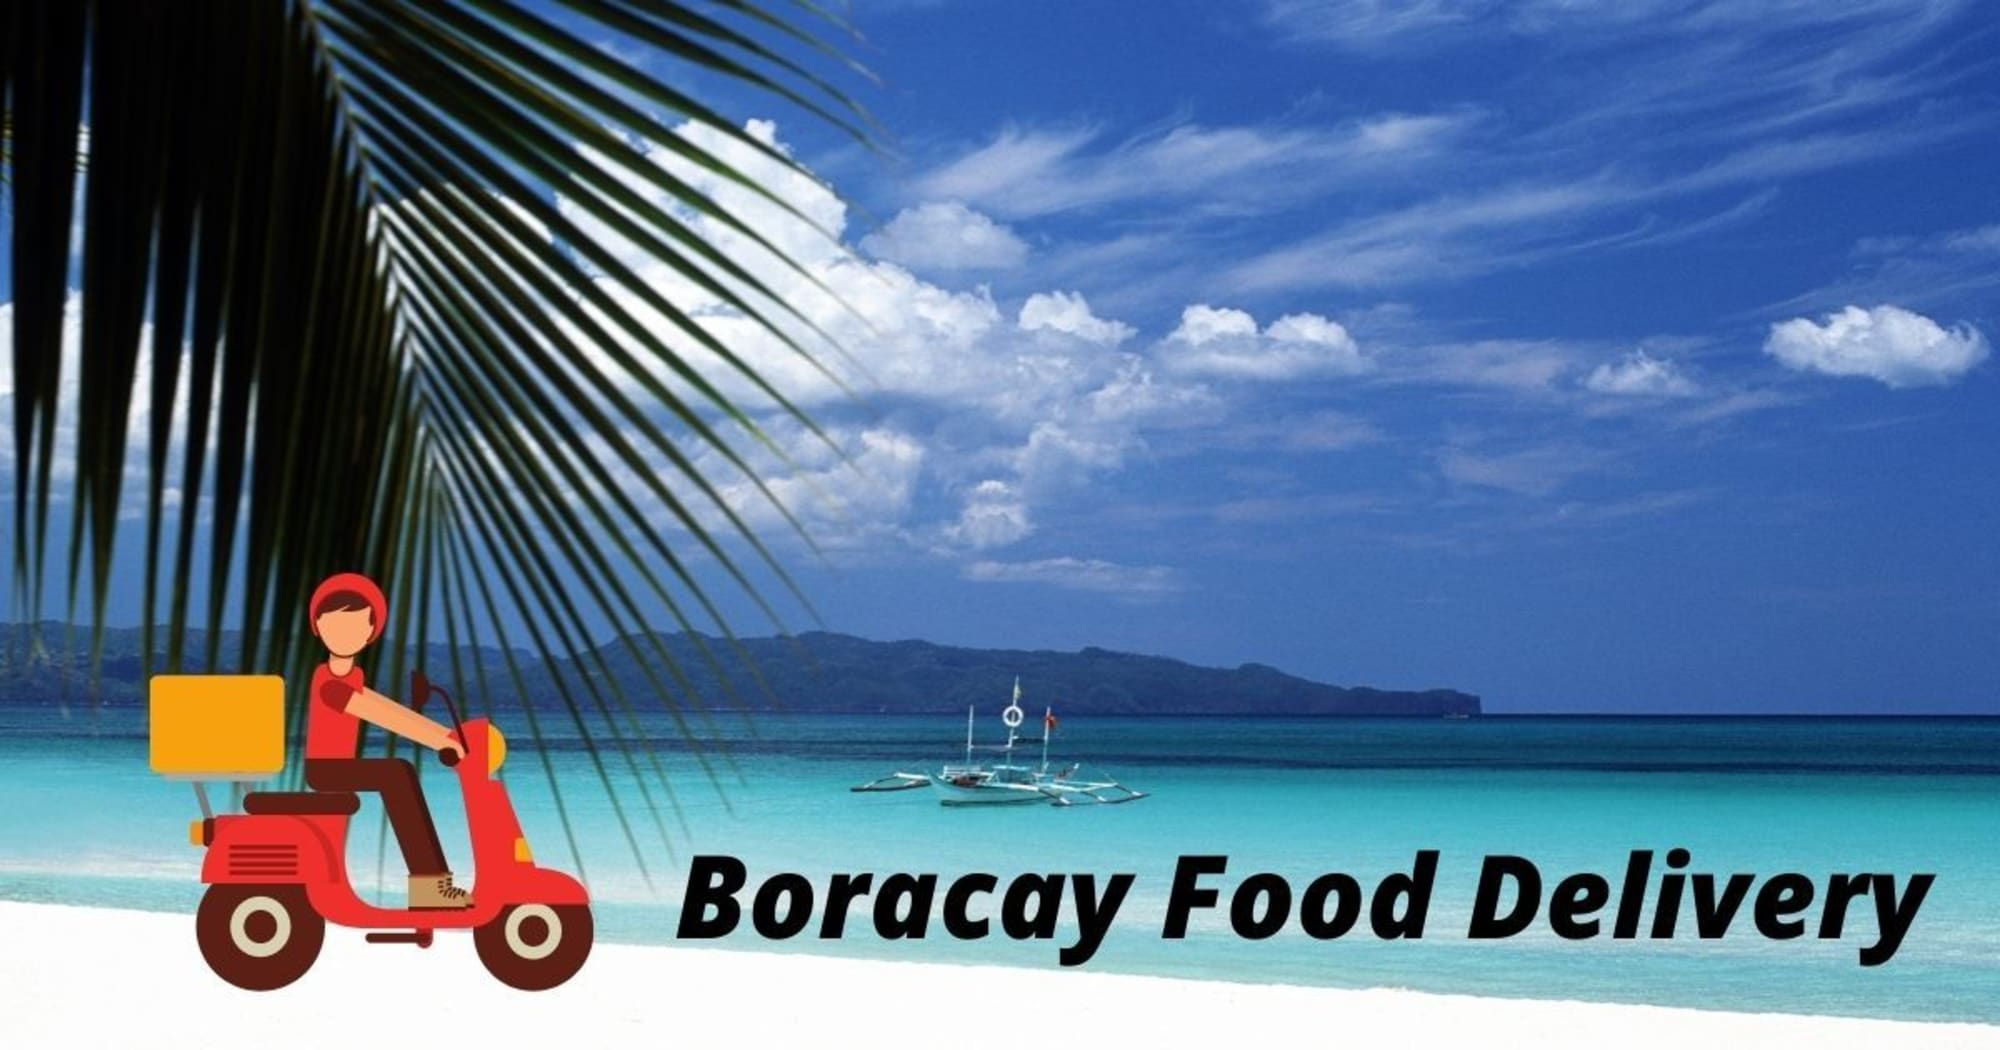 Here are some restaurants in BORACAY offering food delivery during quarantine period